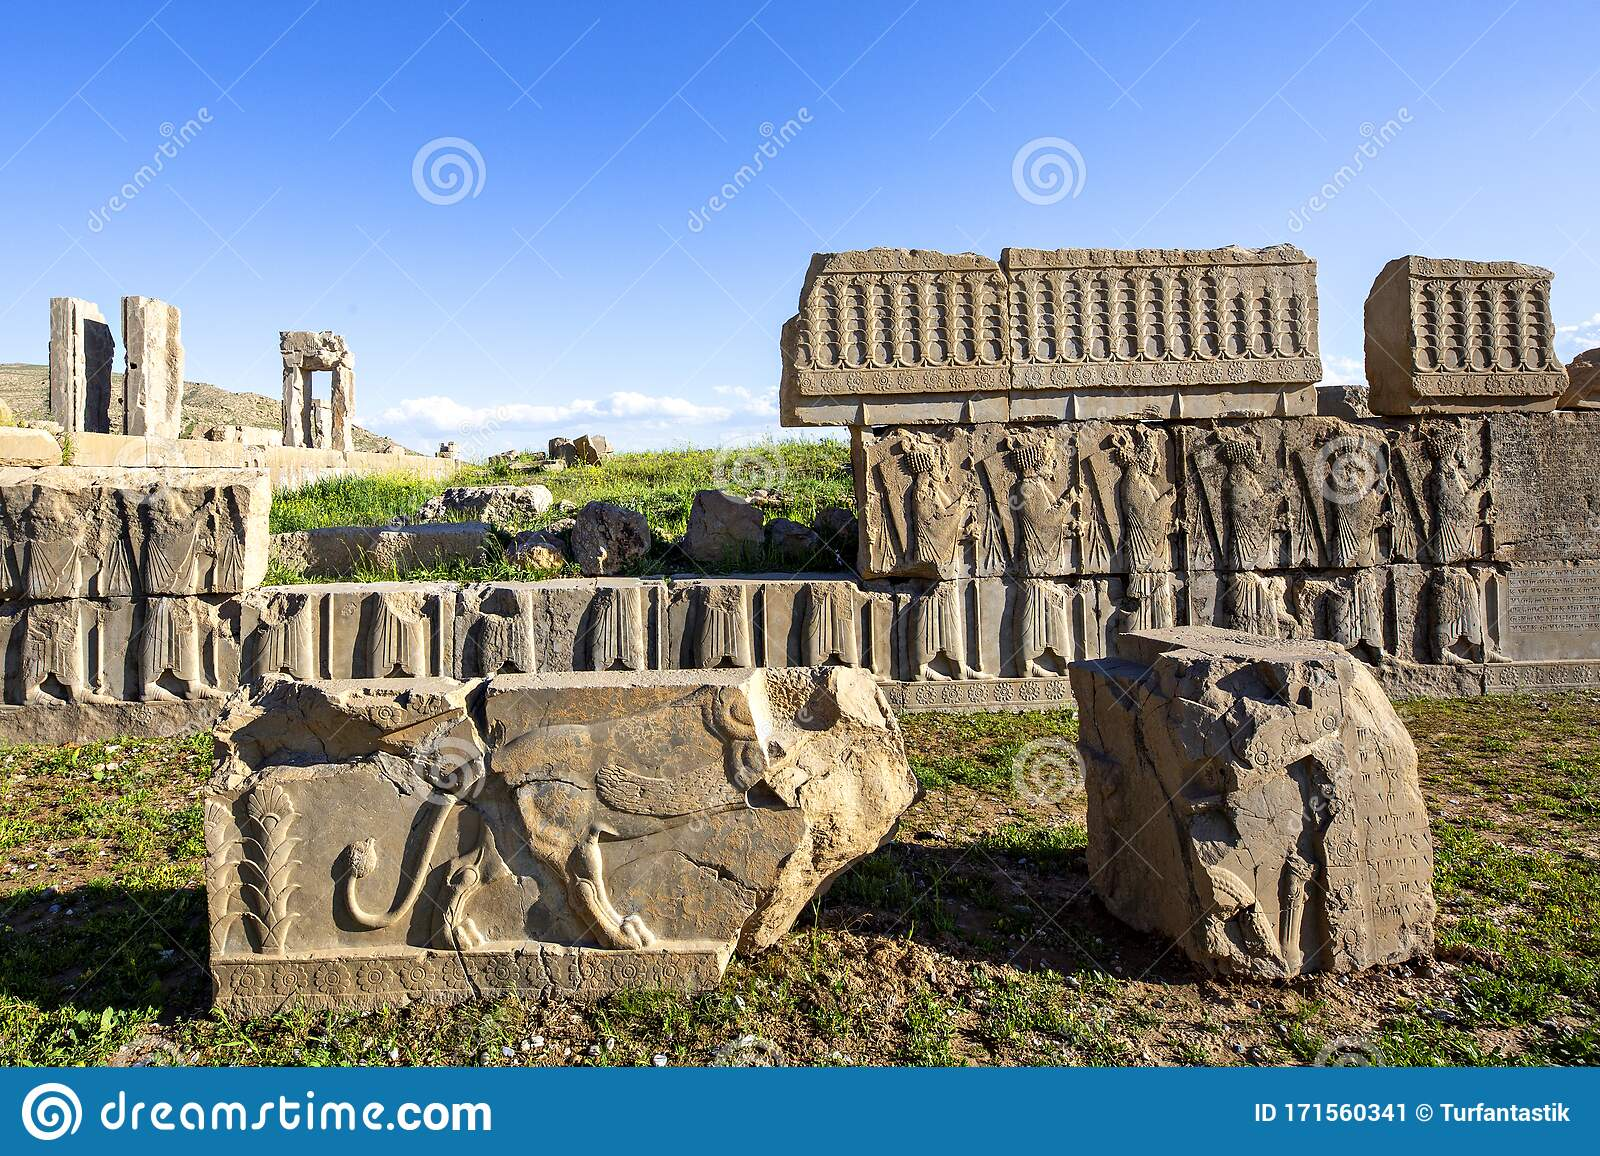 Ancient City Of Persepolis Shiraz Iran Stock Image Image Of Iran Historical 171560341